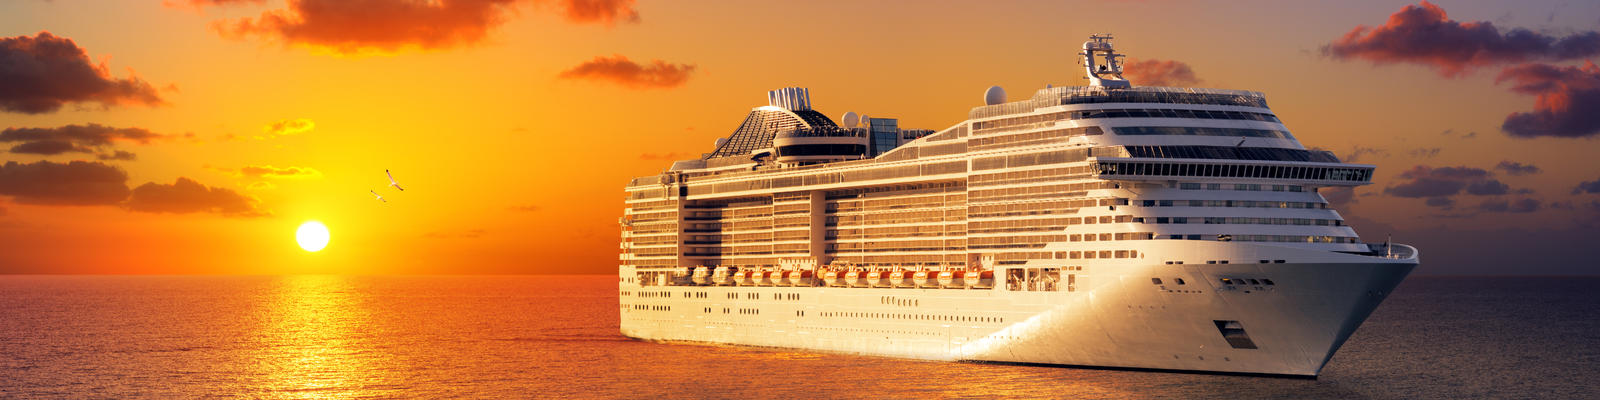 Could You Be Bumped from Your Next Cruise? (Photo: Romolo Tavani/Shutterstock)